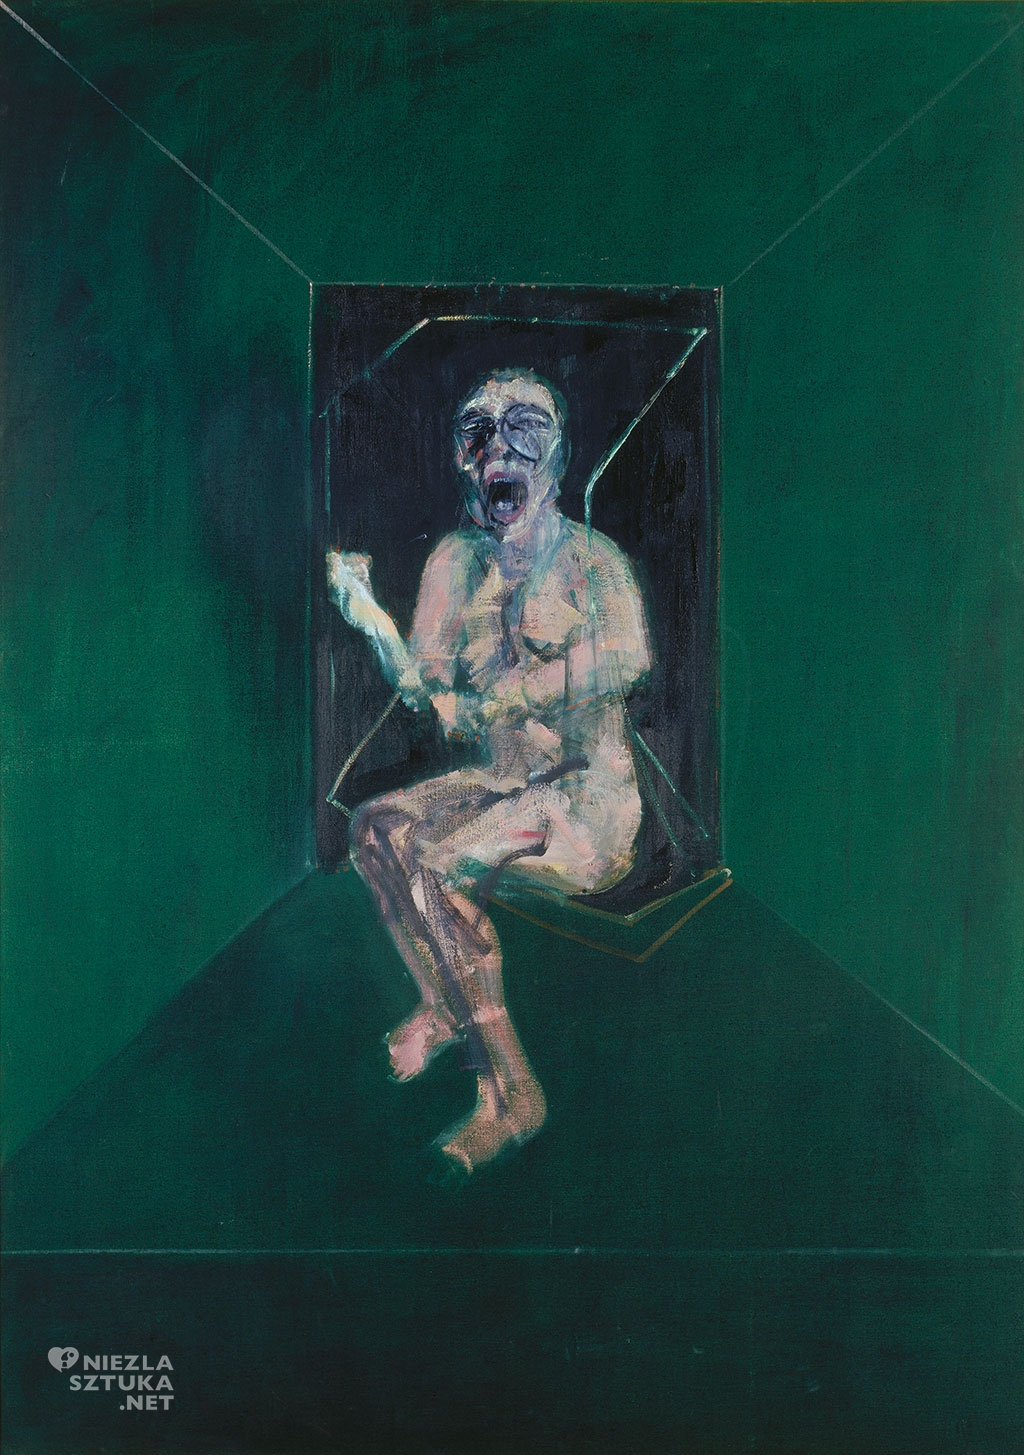 francis_bacon_study_for_the_nurse_in_the_film_battleship_potemkin_1957